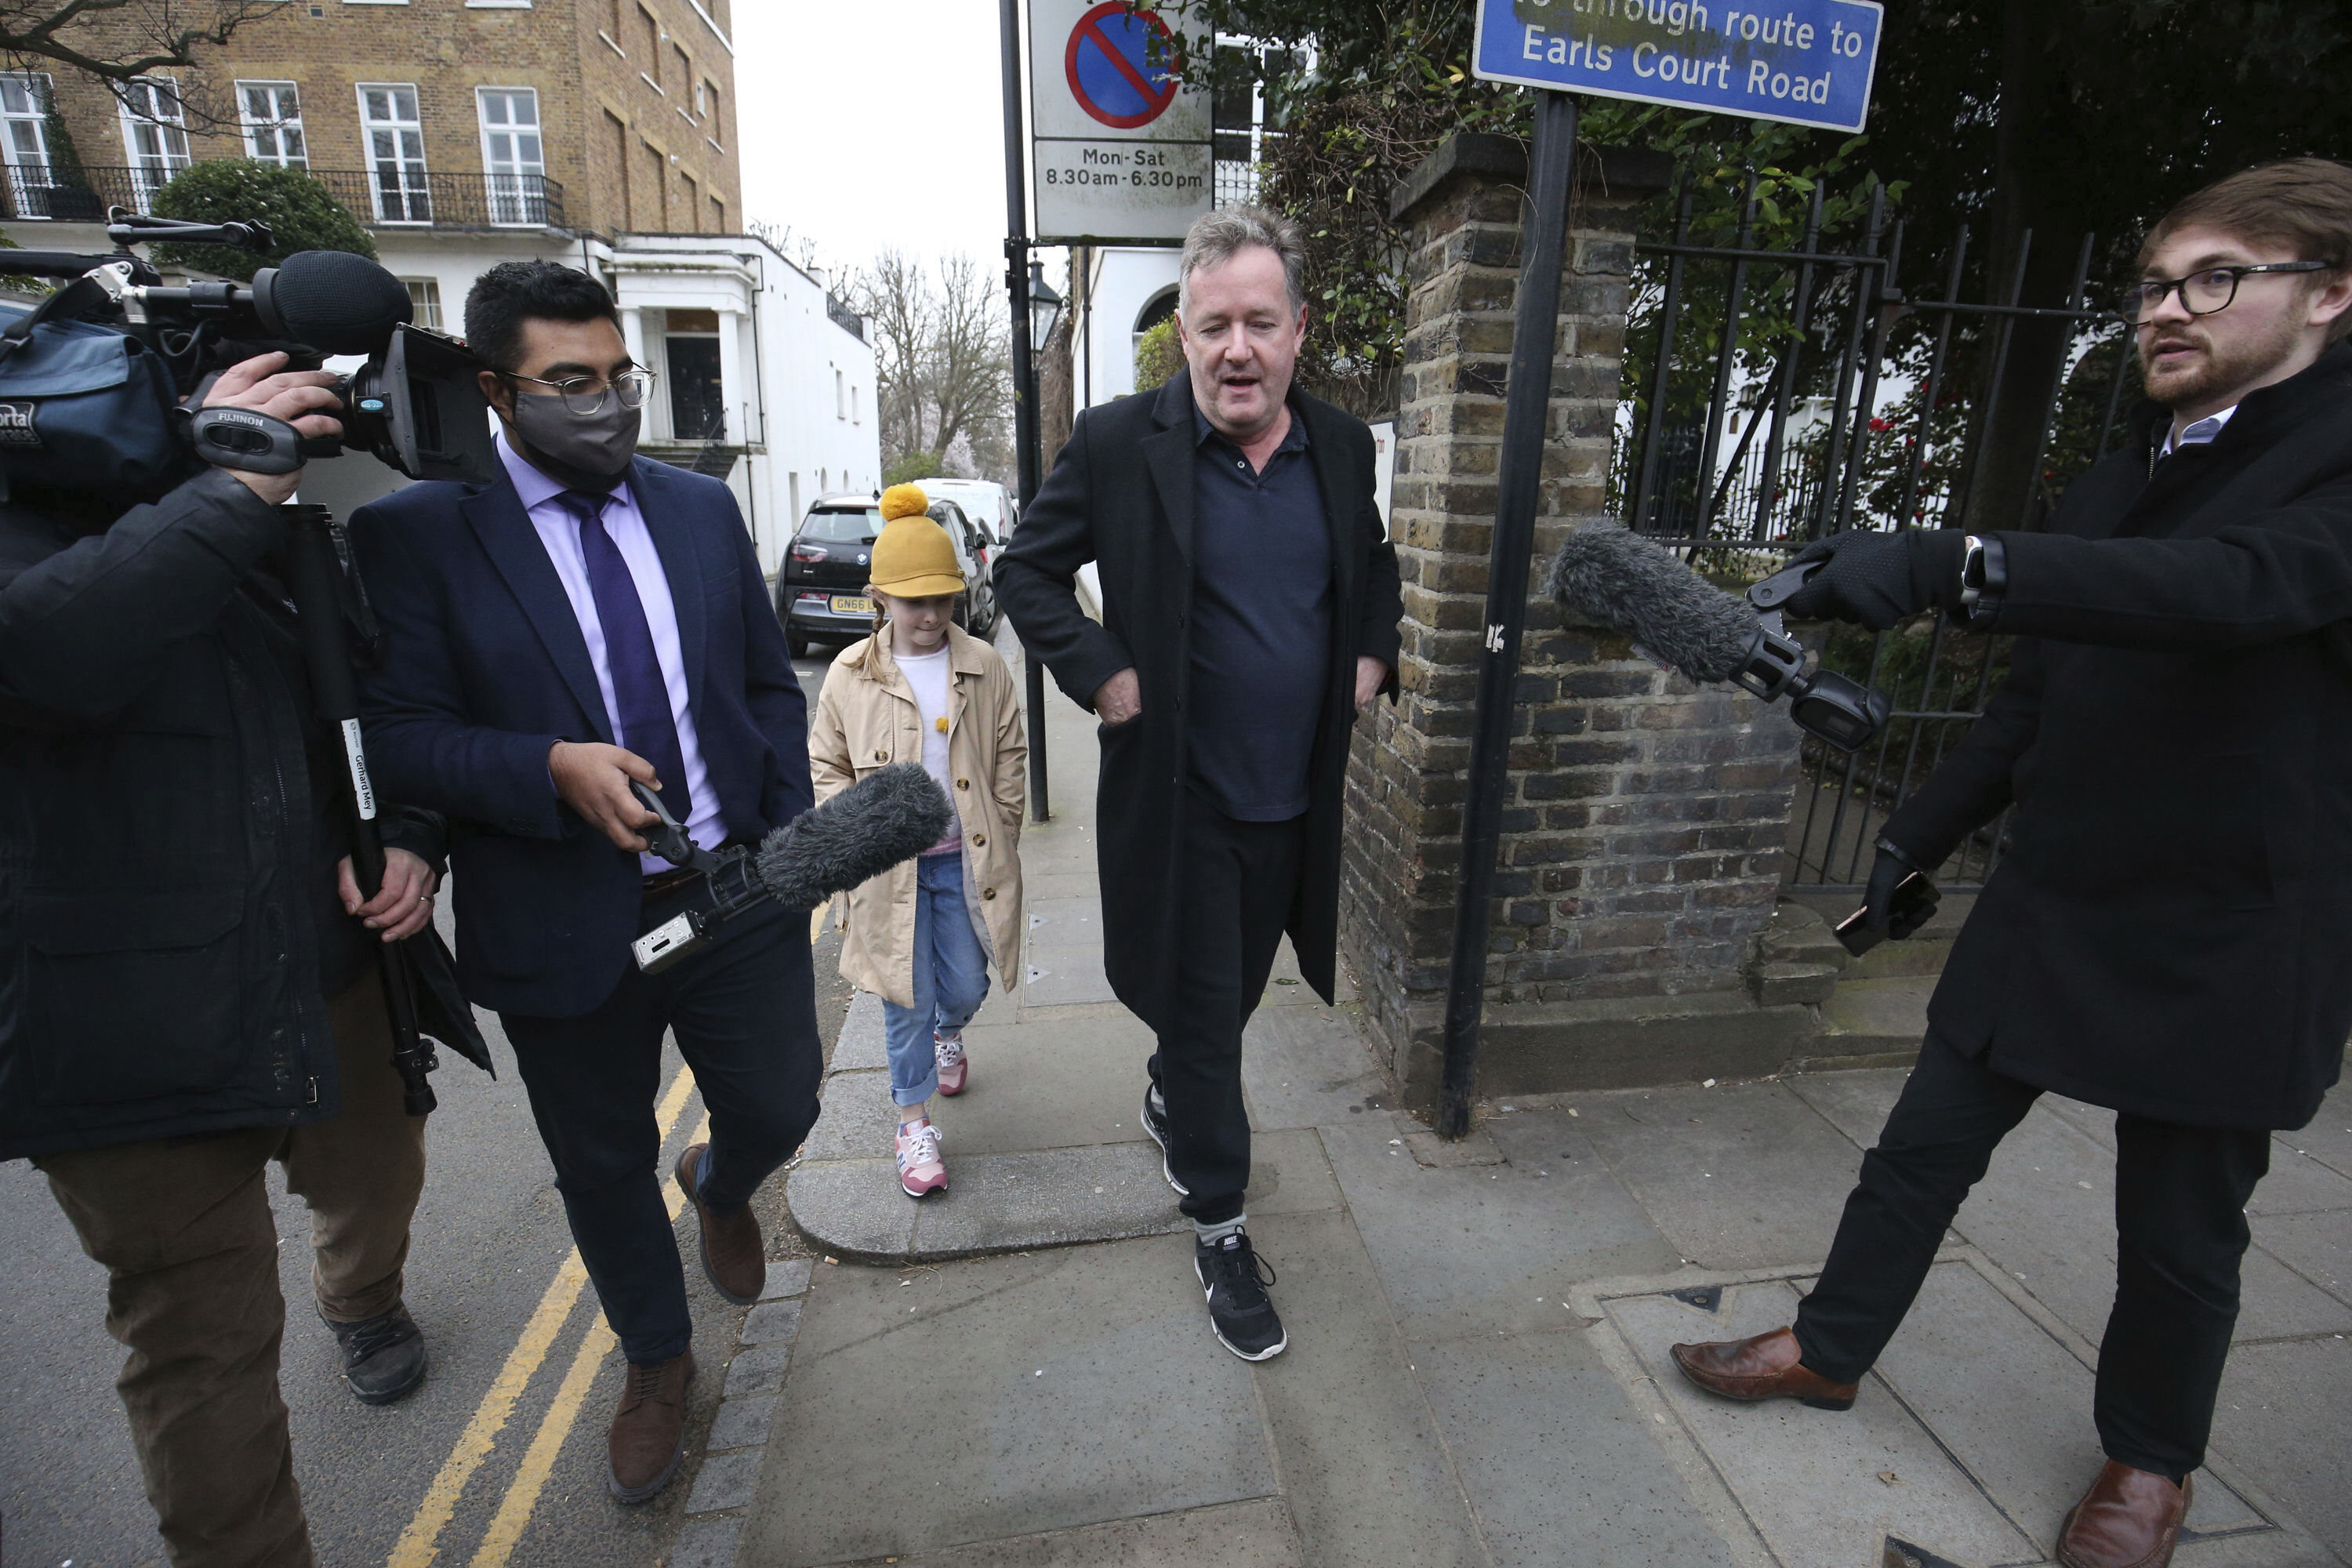 """<p>British television host Piers Morgan speaks to reporters outside his home in Kensington, central London, as he walks his daughter Elise to school on Wednesday March 10, 2021. Morgan quit the """"Good Morning Britain"""" program on Tuesday after making controversial comments about the Duchess of Sussex. The U.K.'s media watchdog said earlier Tuesday it was launching an investigation into the show under its harm and offense rules after receiving more than 41,000 complaints about Morgan's comments on Meghan. (Jonathan Brady/PA via AP)</p>"""